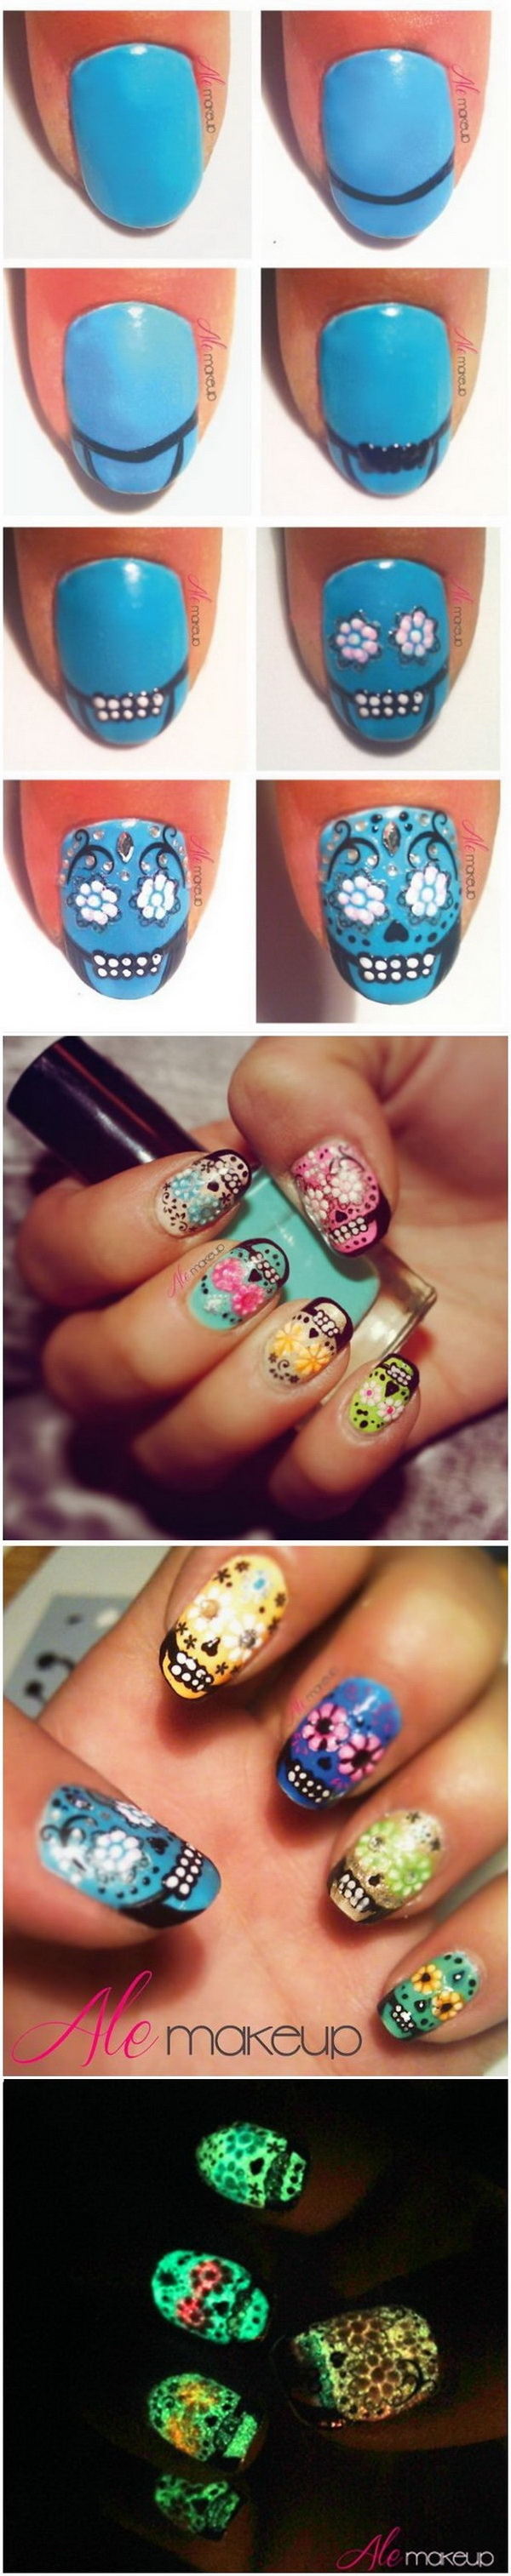 Wonderful Best Barry M Nail Polish Tiny Easy To Do Christmas Nail Art Round Style Me Up Nail Art Kit How To Matte Nail Polish Old Nail Polish On Ring Finger BlackBeautiful Nail Polish DIY Halloween Nail Art Designs With Step By Step Tutorials   For ..